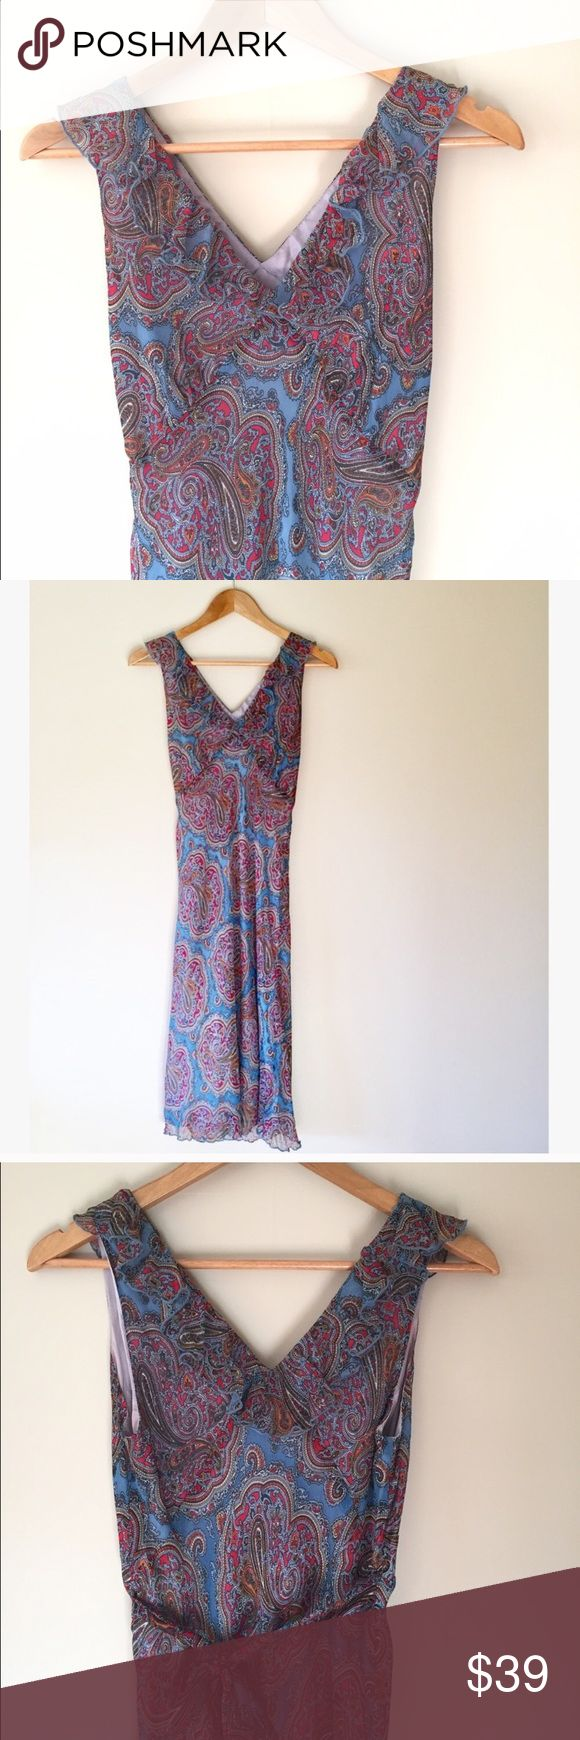 """Anna Sui Paisley Silk Midi Dress This gorgeous Anna Sui dress is versatile for all seasons. Fully lined. Shell is 100% silk, lining is 100% acetate.   44"""" long  17"""" armpit to armpit   No trades, offers welcome! Anna Sui Dresses Midi"""